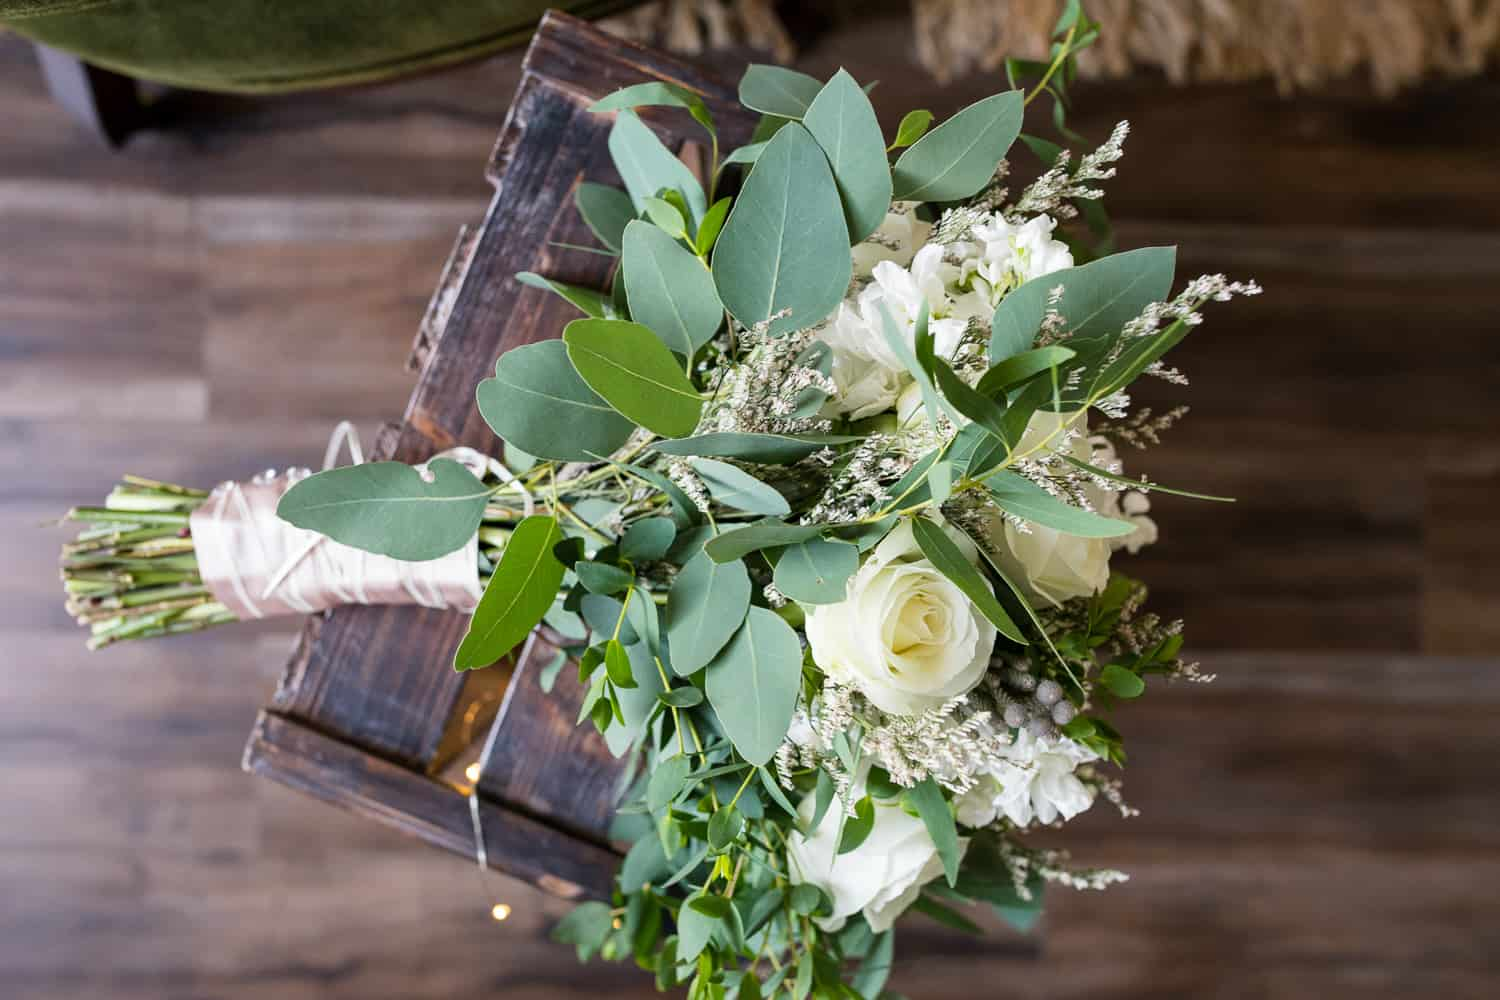 brides bouqet with white roses and hydranga sitting on a wooden crate.